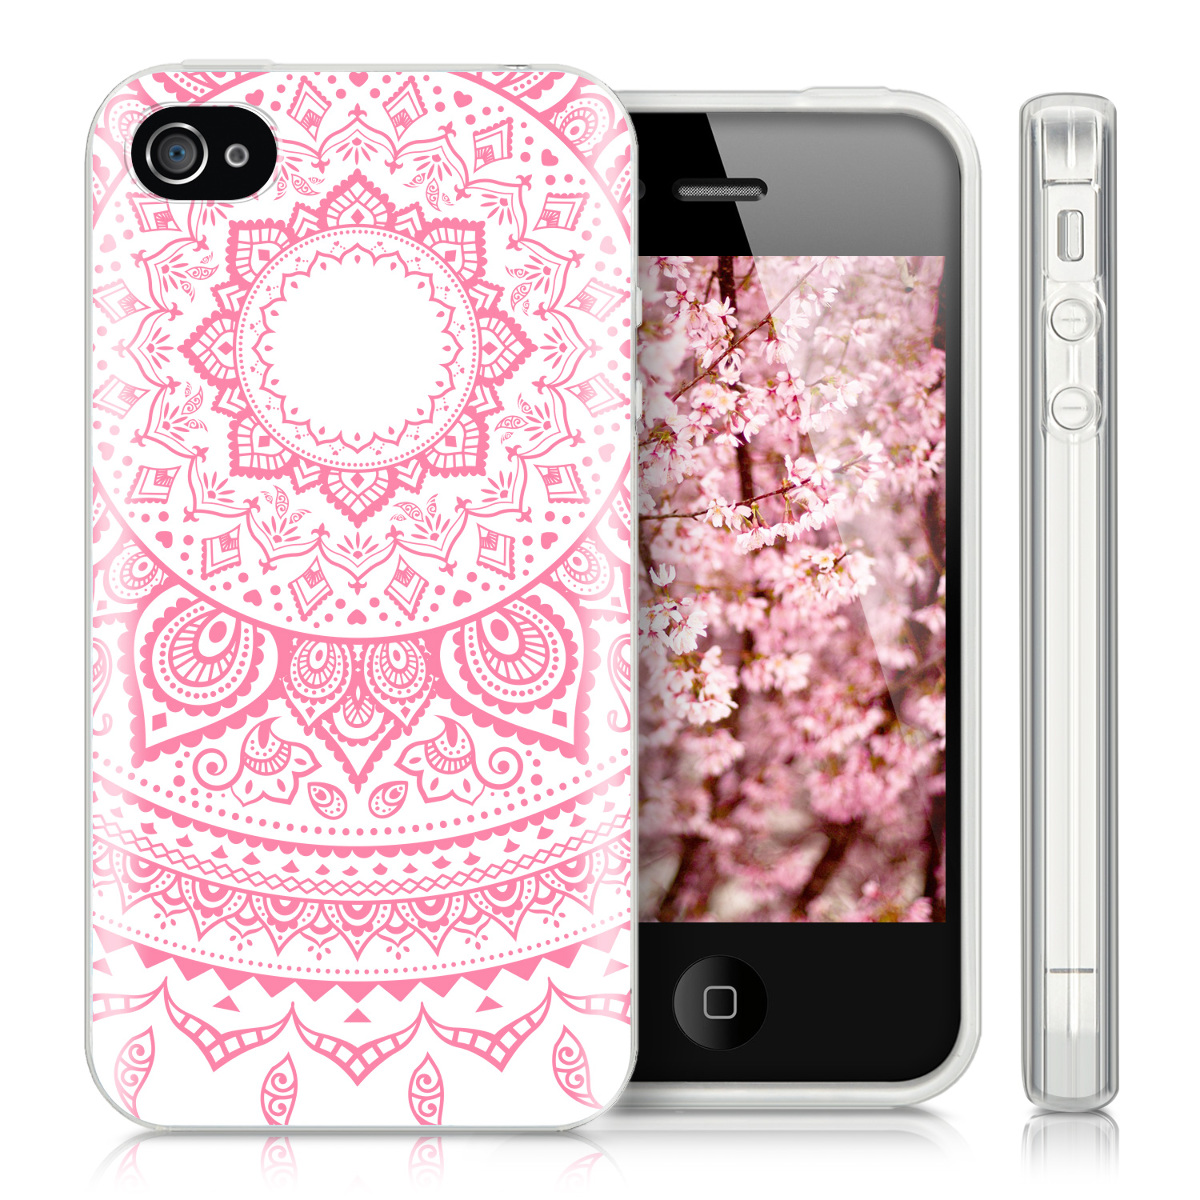 kwmobile-COVER-FOR-APPLE-IPHONE-4-4S-CASE-COVER-MOBILE-PHONE-PROTECTIVE-CASE